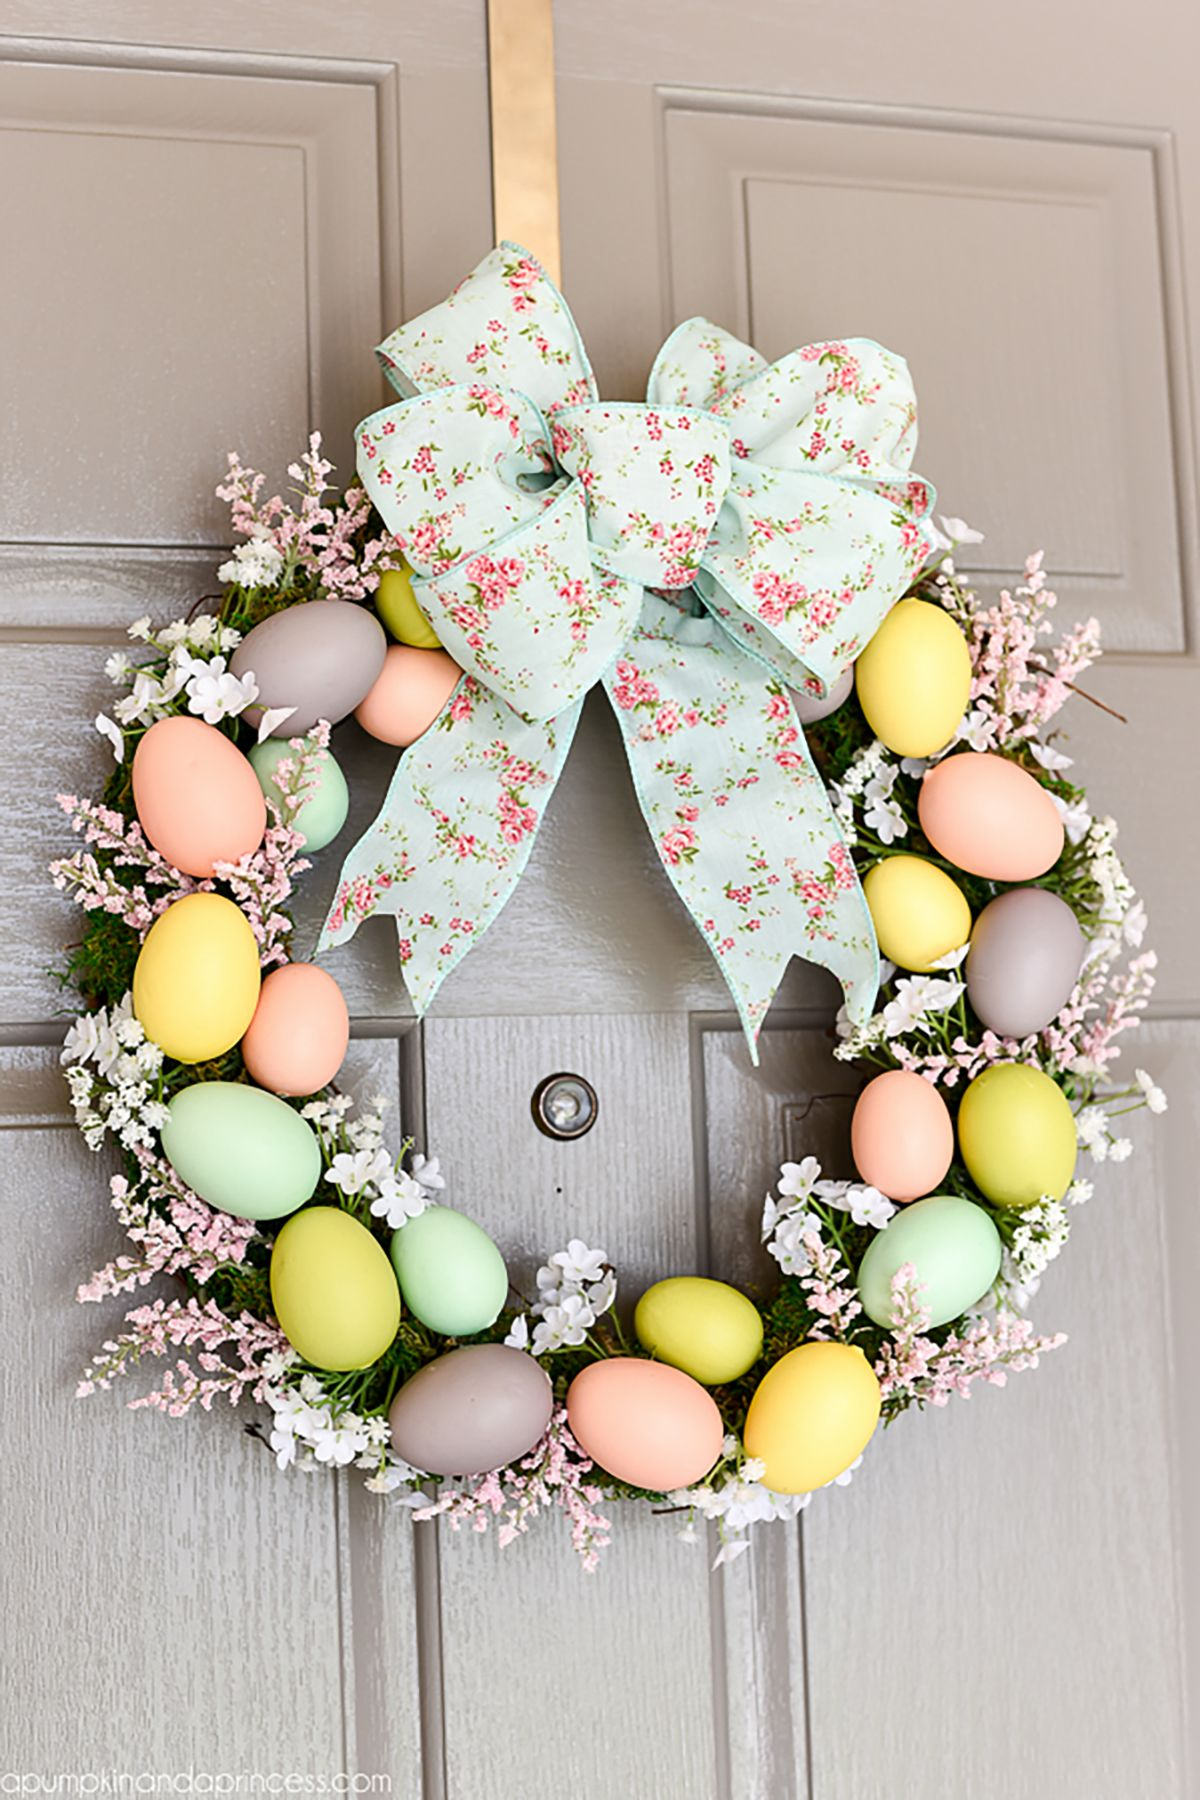 22 Diy Easter Wreath Ideas How To Make A Cute Easter Door Wreath